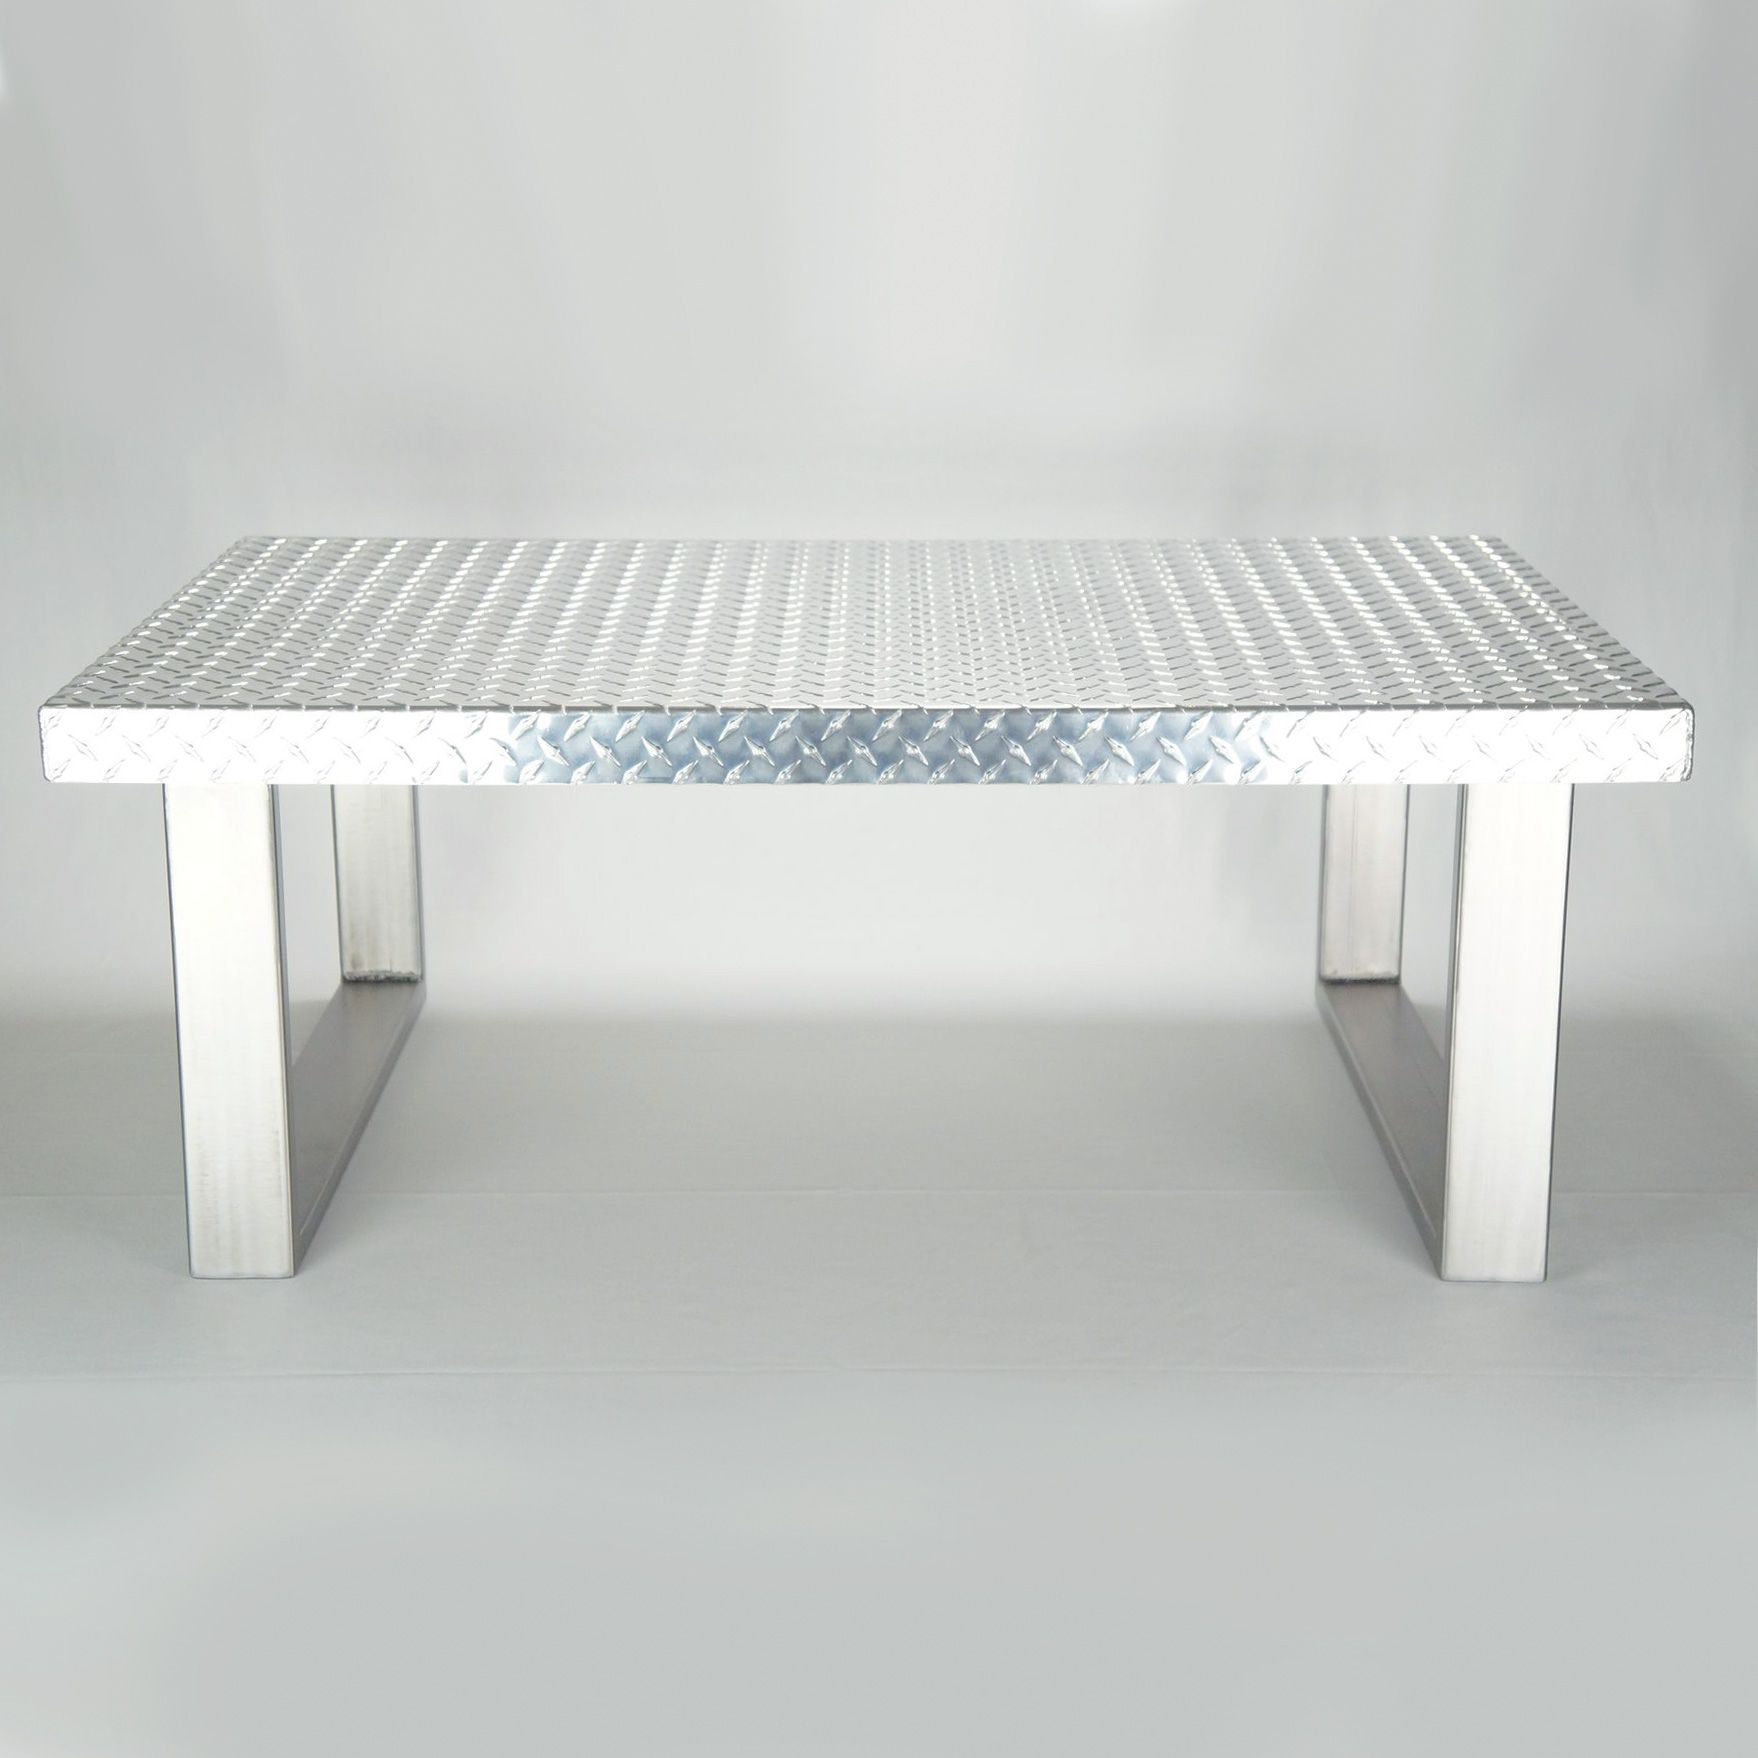 Hand Made Industrial Diamond Plate Metal Coffee Table by CK